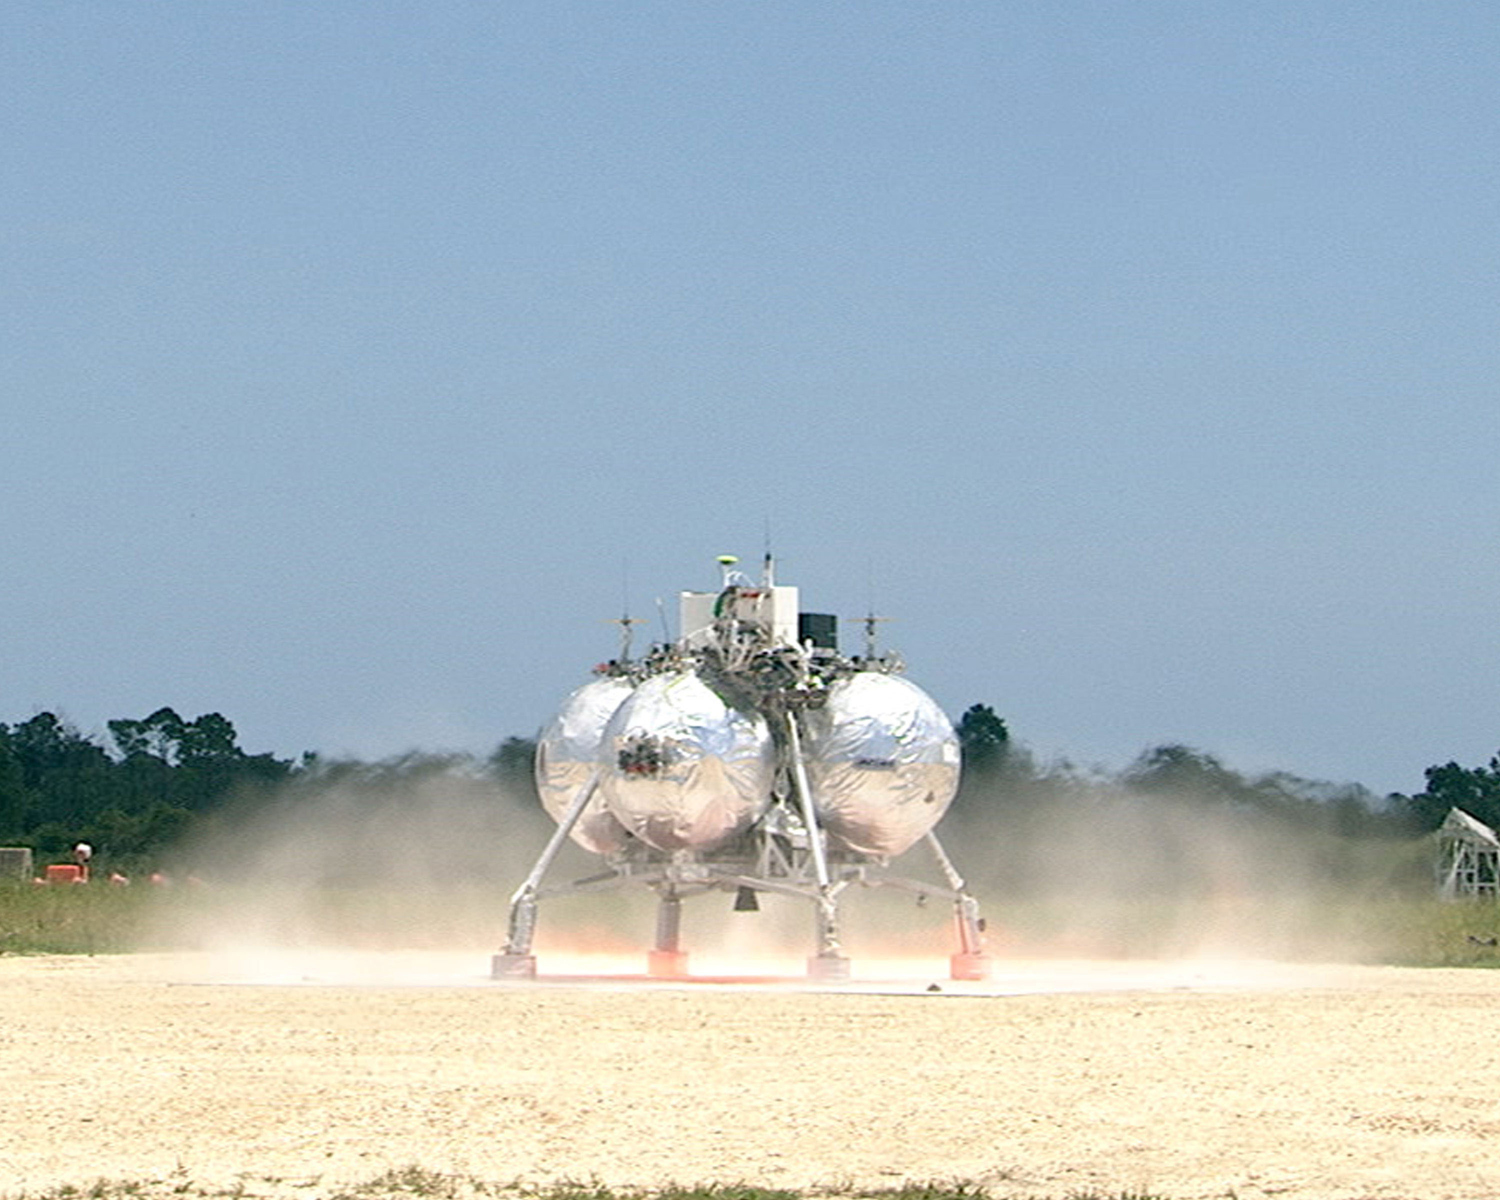 Morpheus Lander Lifts Off on Free Flight